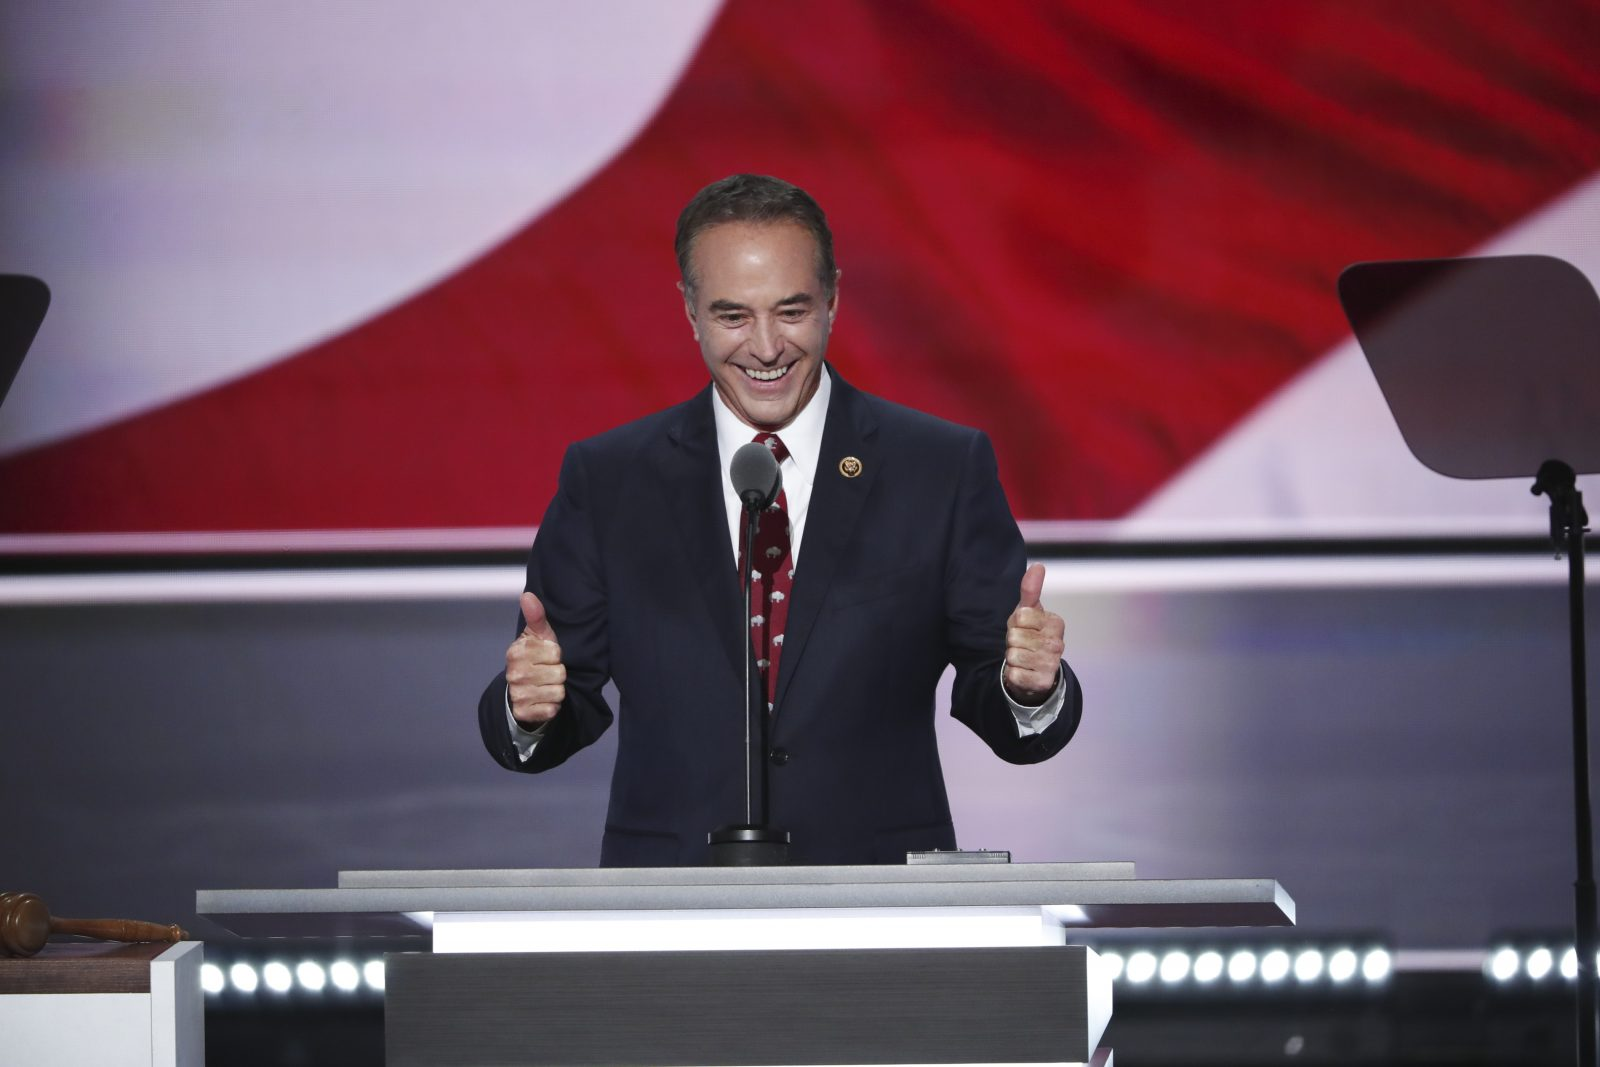 Rep. Chris Collins of Clarence, shown here at the Republican National Convention in Cleveland, won't face a tough challenge this fall if the pundits are right.